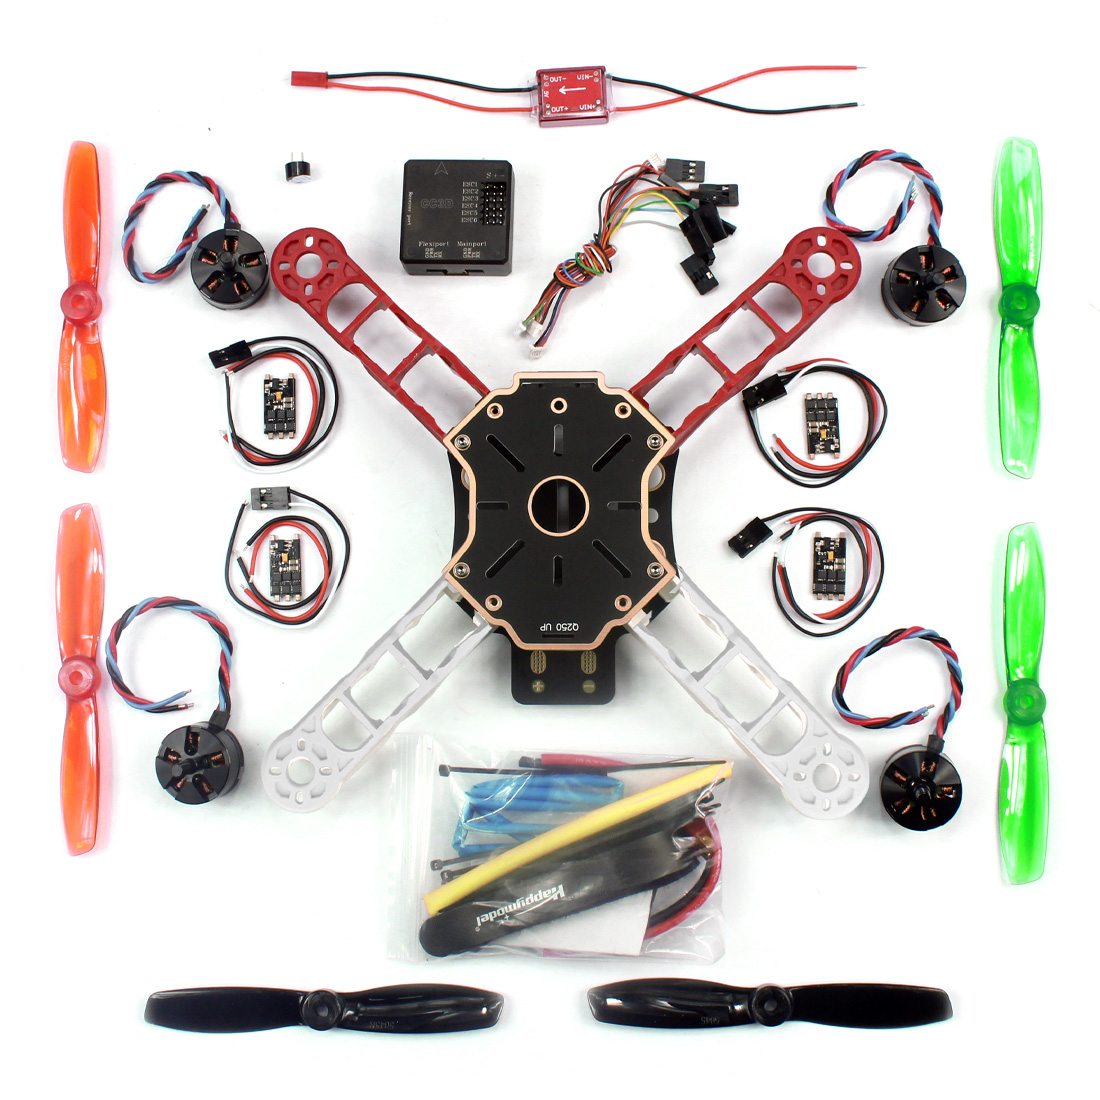 f11069 mini 250 rc quadcopter combo arf q250 frame cc3d flight controller emax simon 12a esc brushless motor mt2204 cw ccw fs in parts accessories from  [ 1100 x 1100 Pixel ]